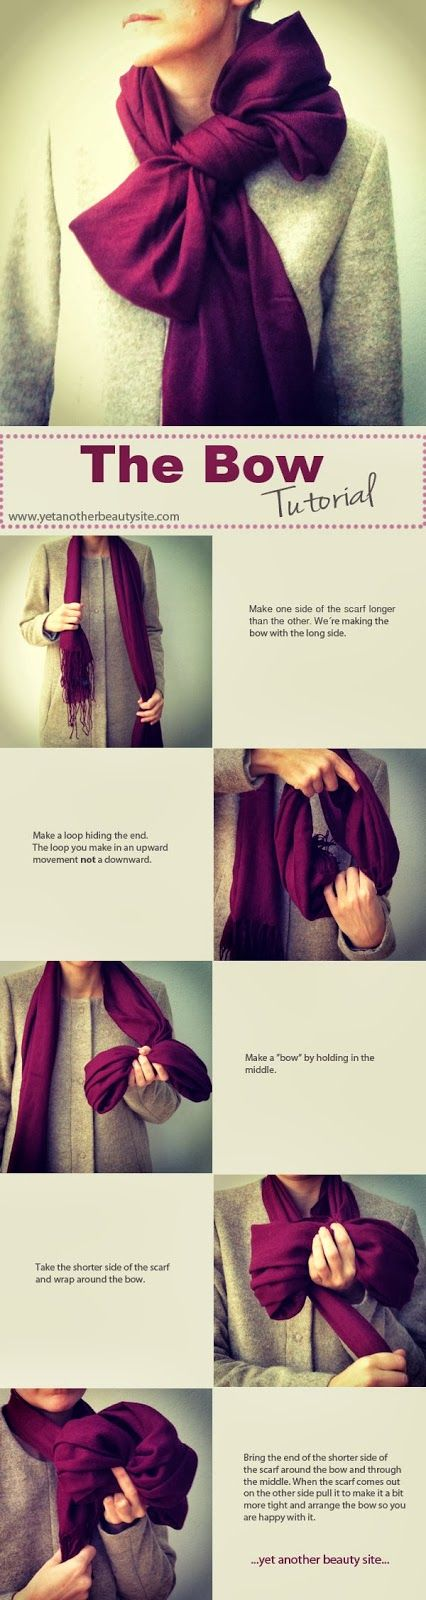 Learn step by step how to tie a scarf to look like a big bow. Classy! #howtotieascarf #bowscarf #scarf